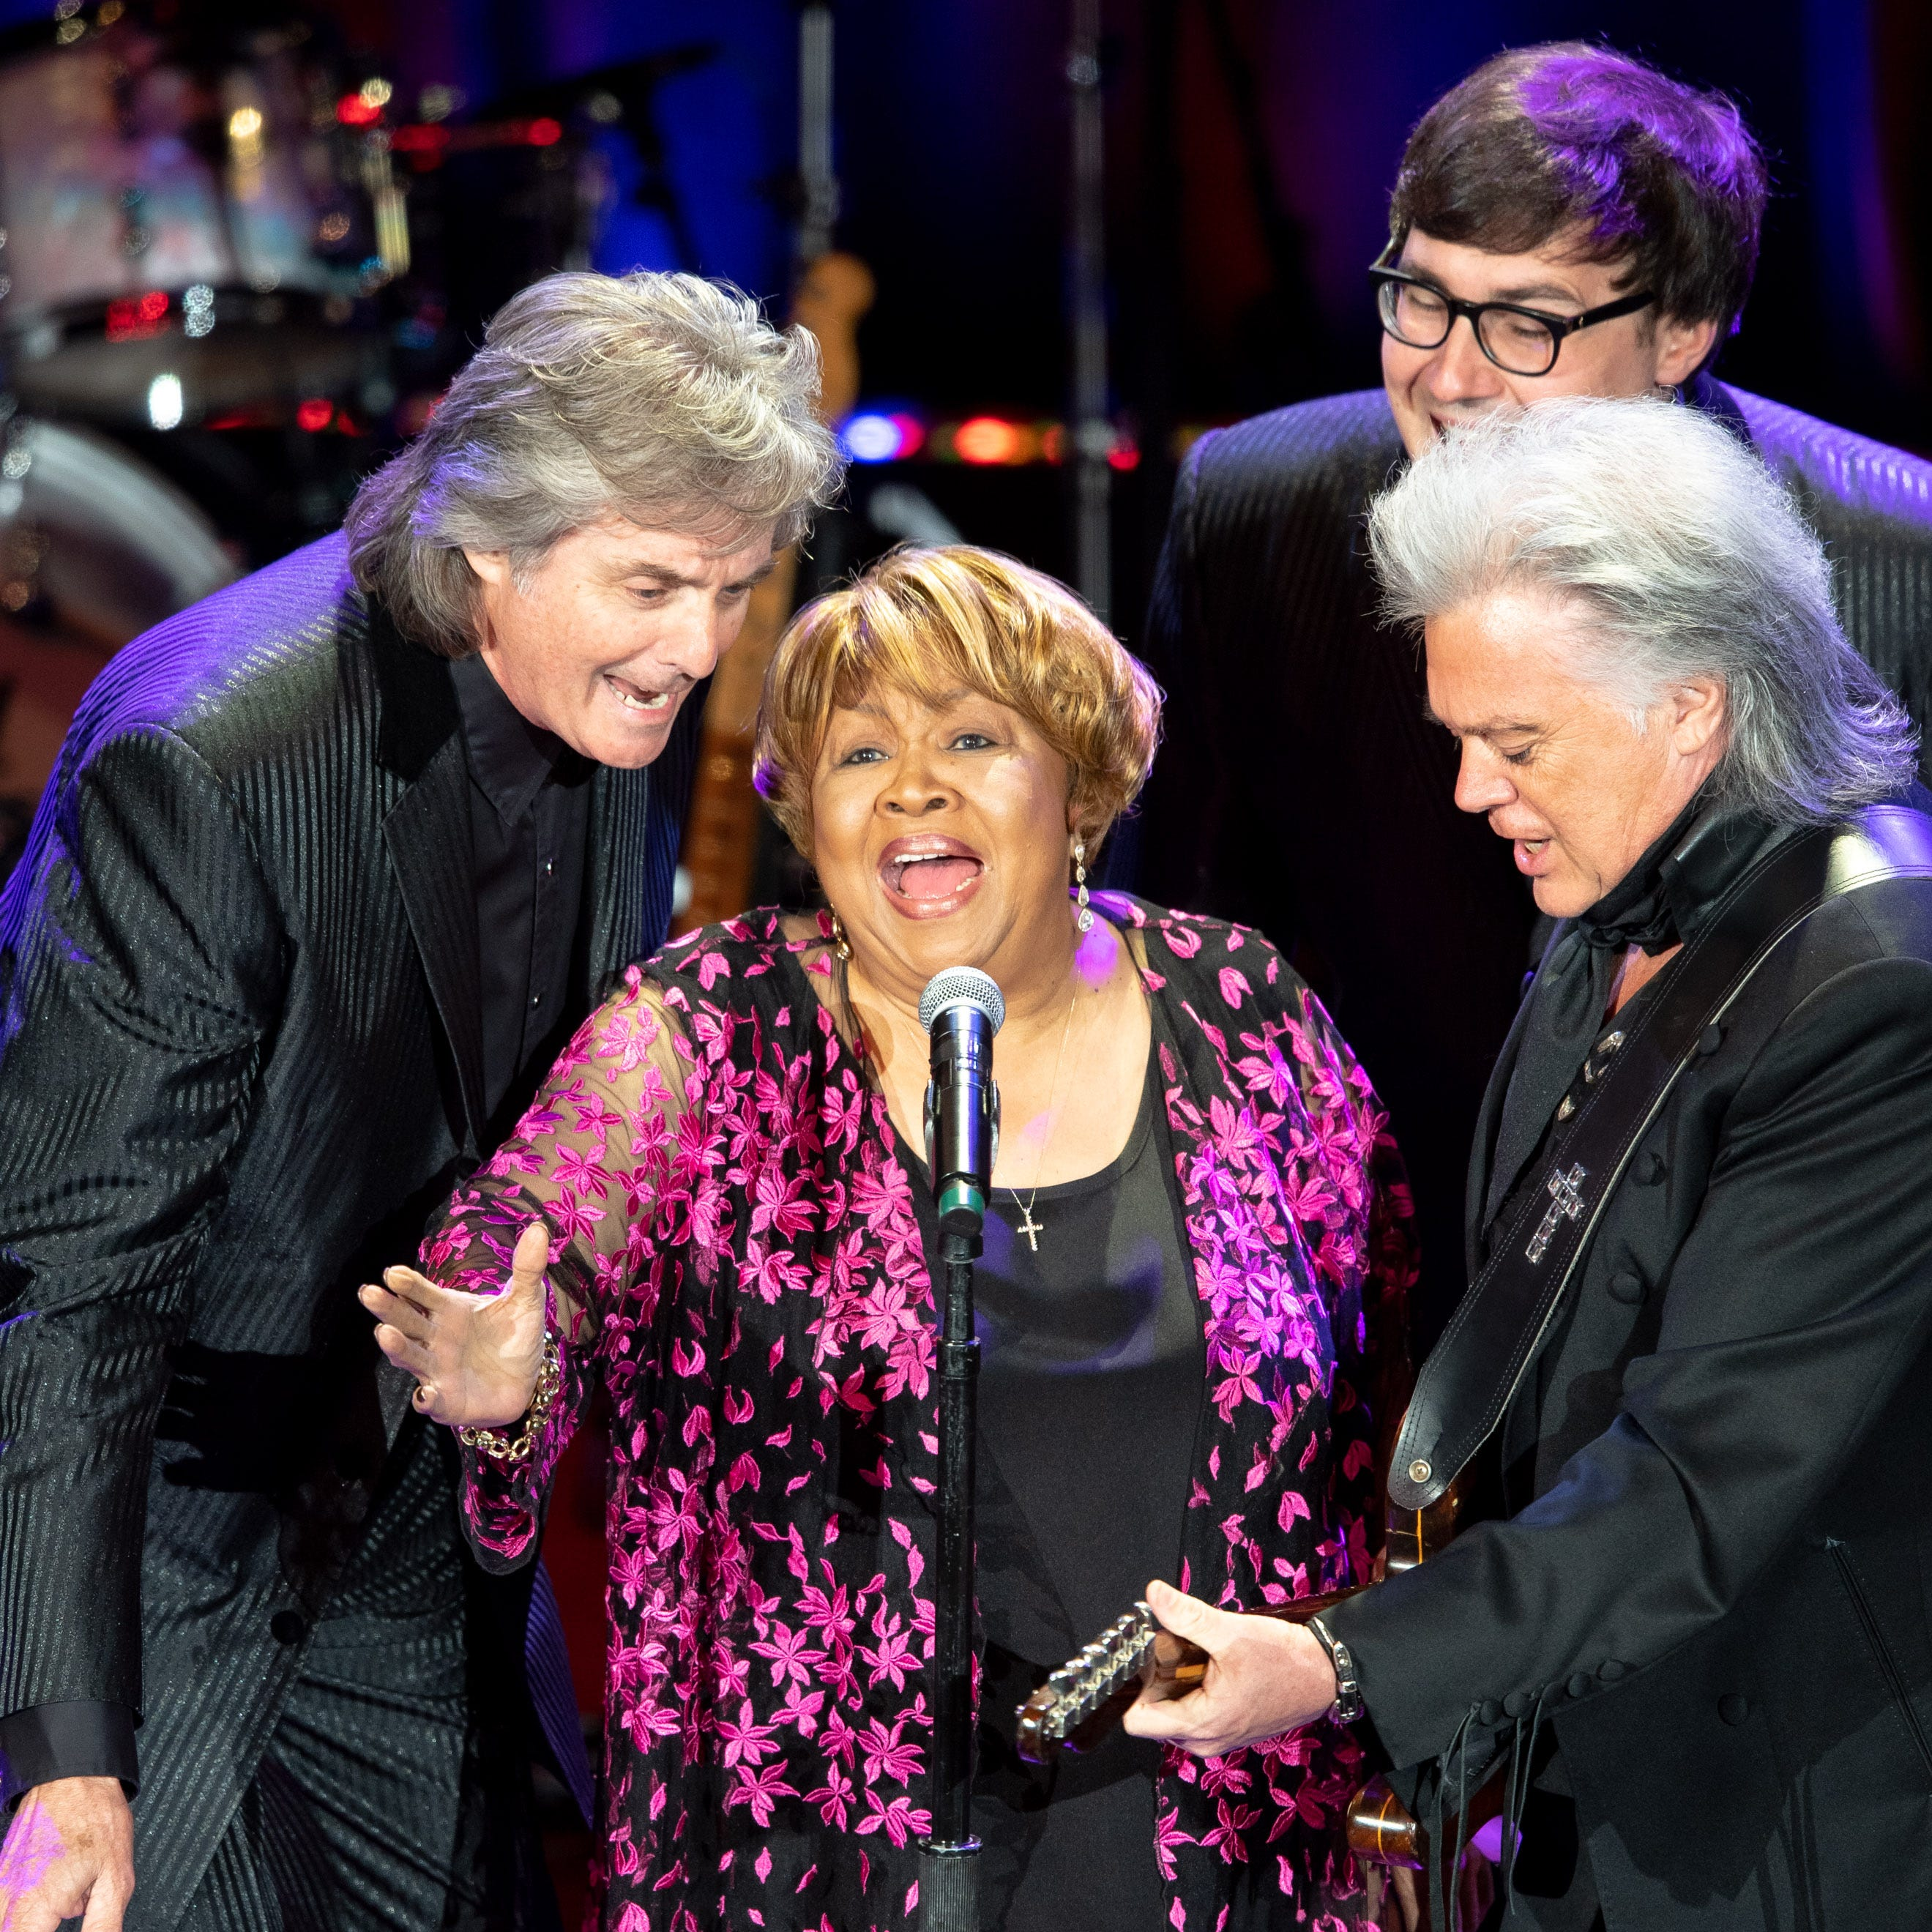 Mavis Staples and an all-star cast of friends celebrate her 80th birthday at the Ryman